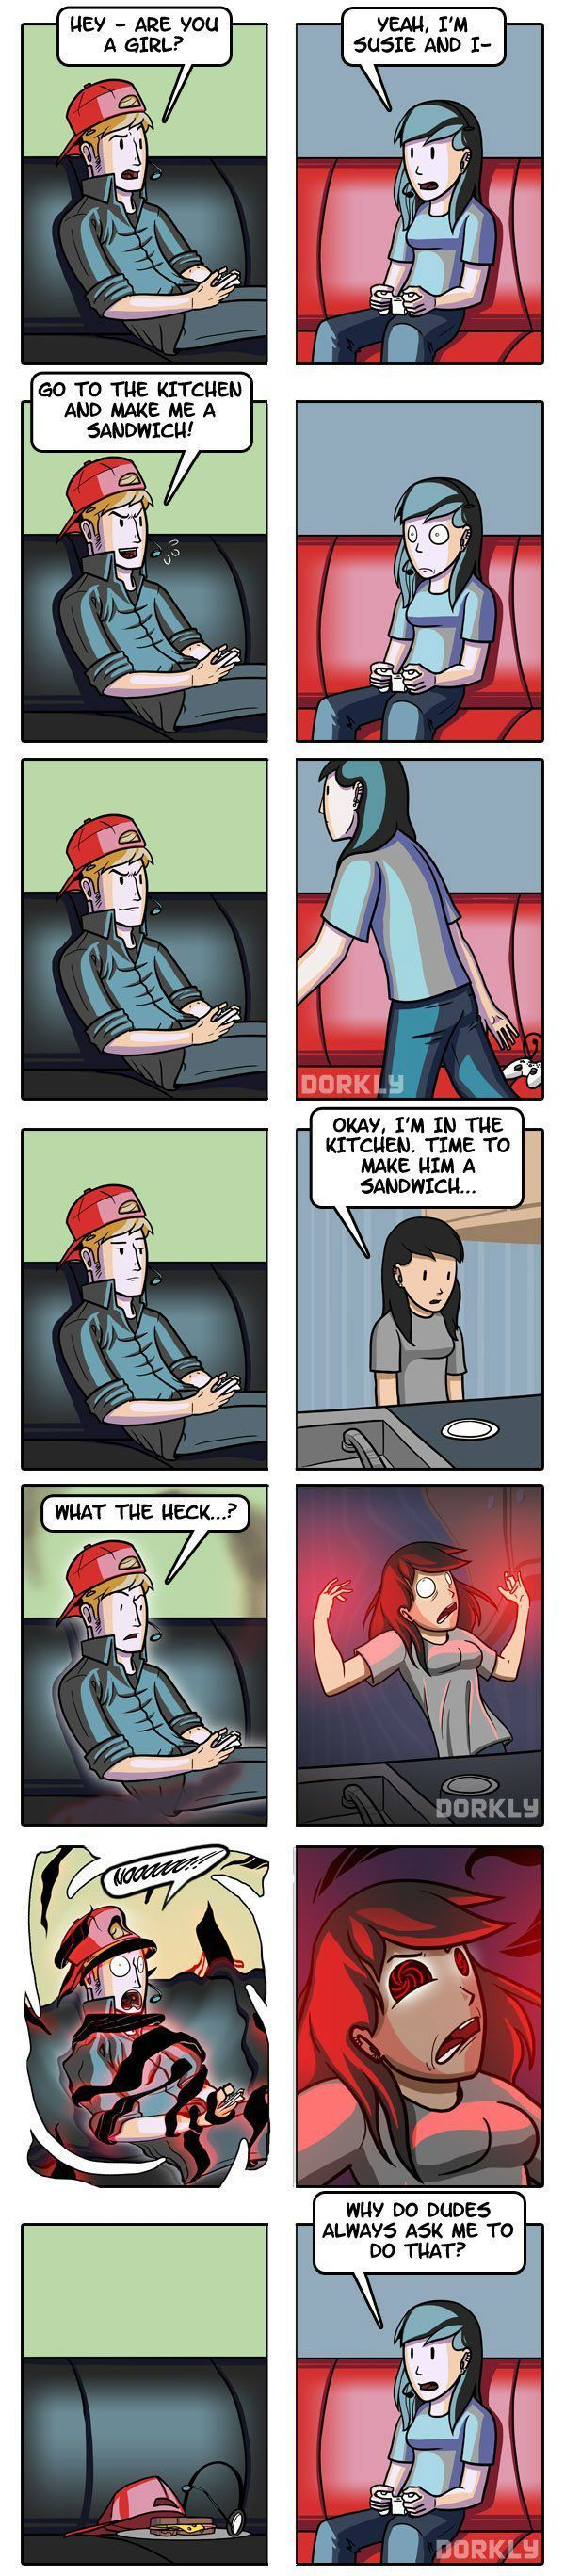 Make Me a Sandwich Comic http://geekxgirls.com/article.php?ID=5408